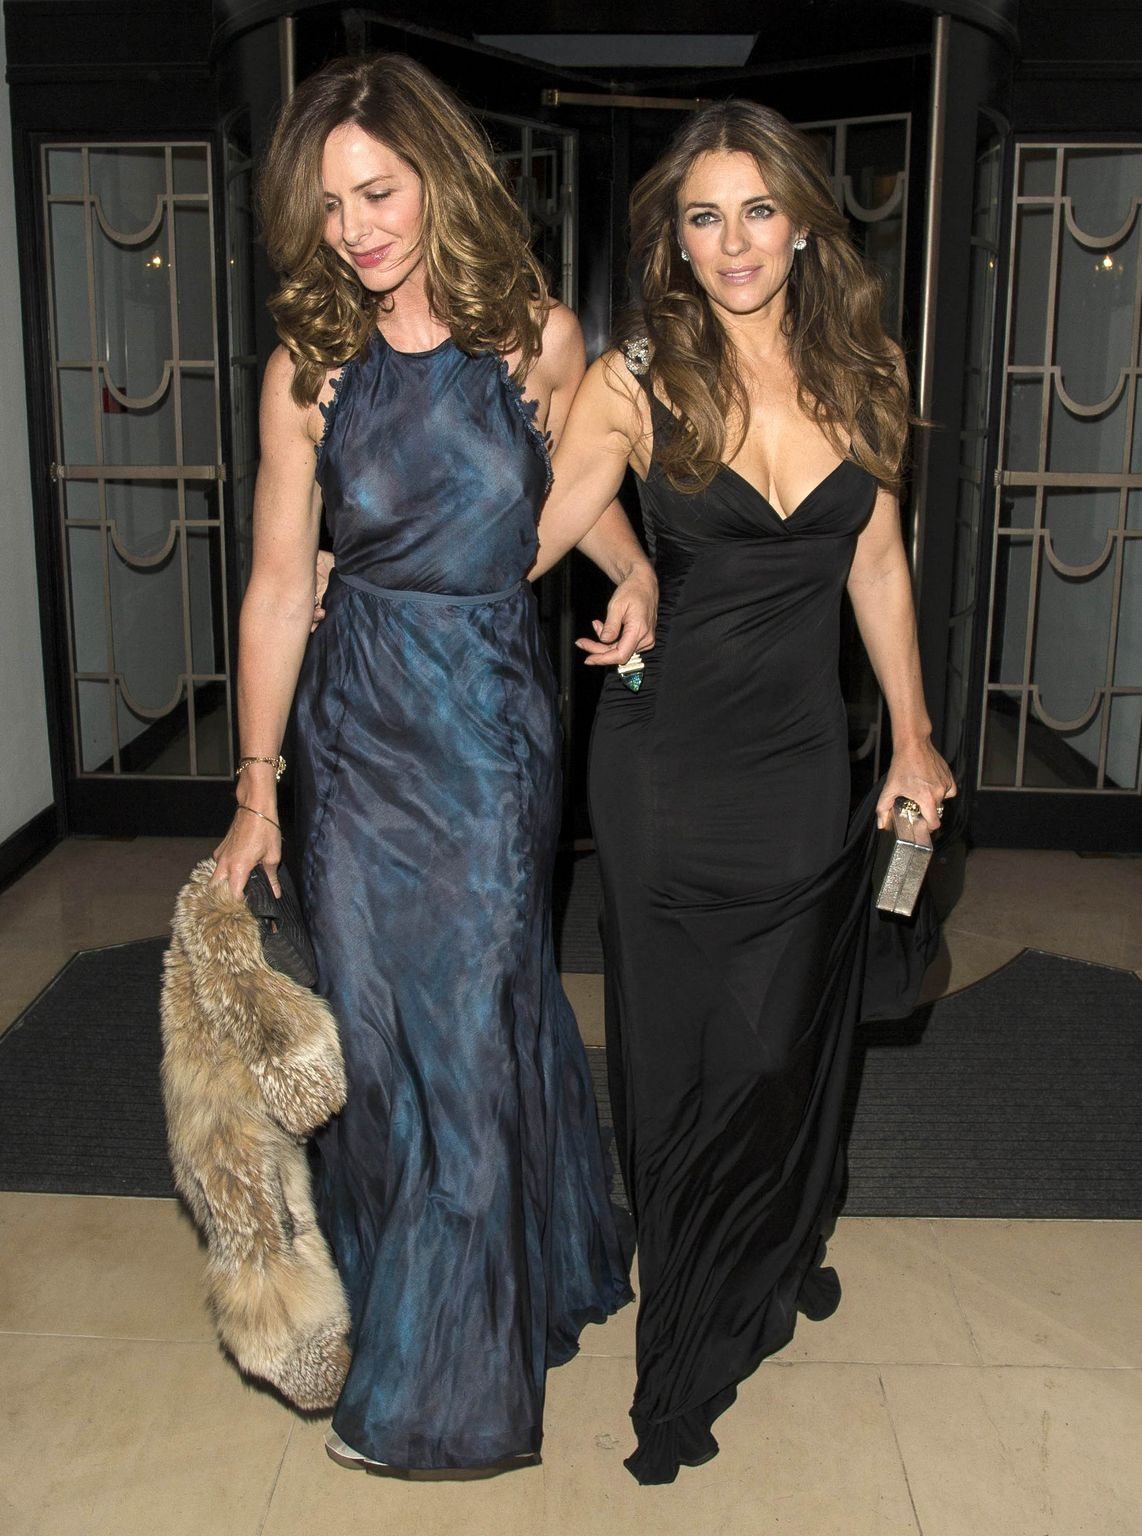 Elizabeth Hurley, Trinny Woodall and Natalie Imbruglia at Quercus Biasi Foundation Spring Gala-3